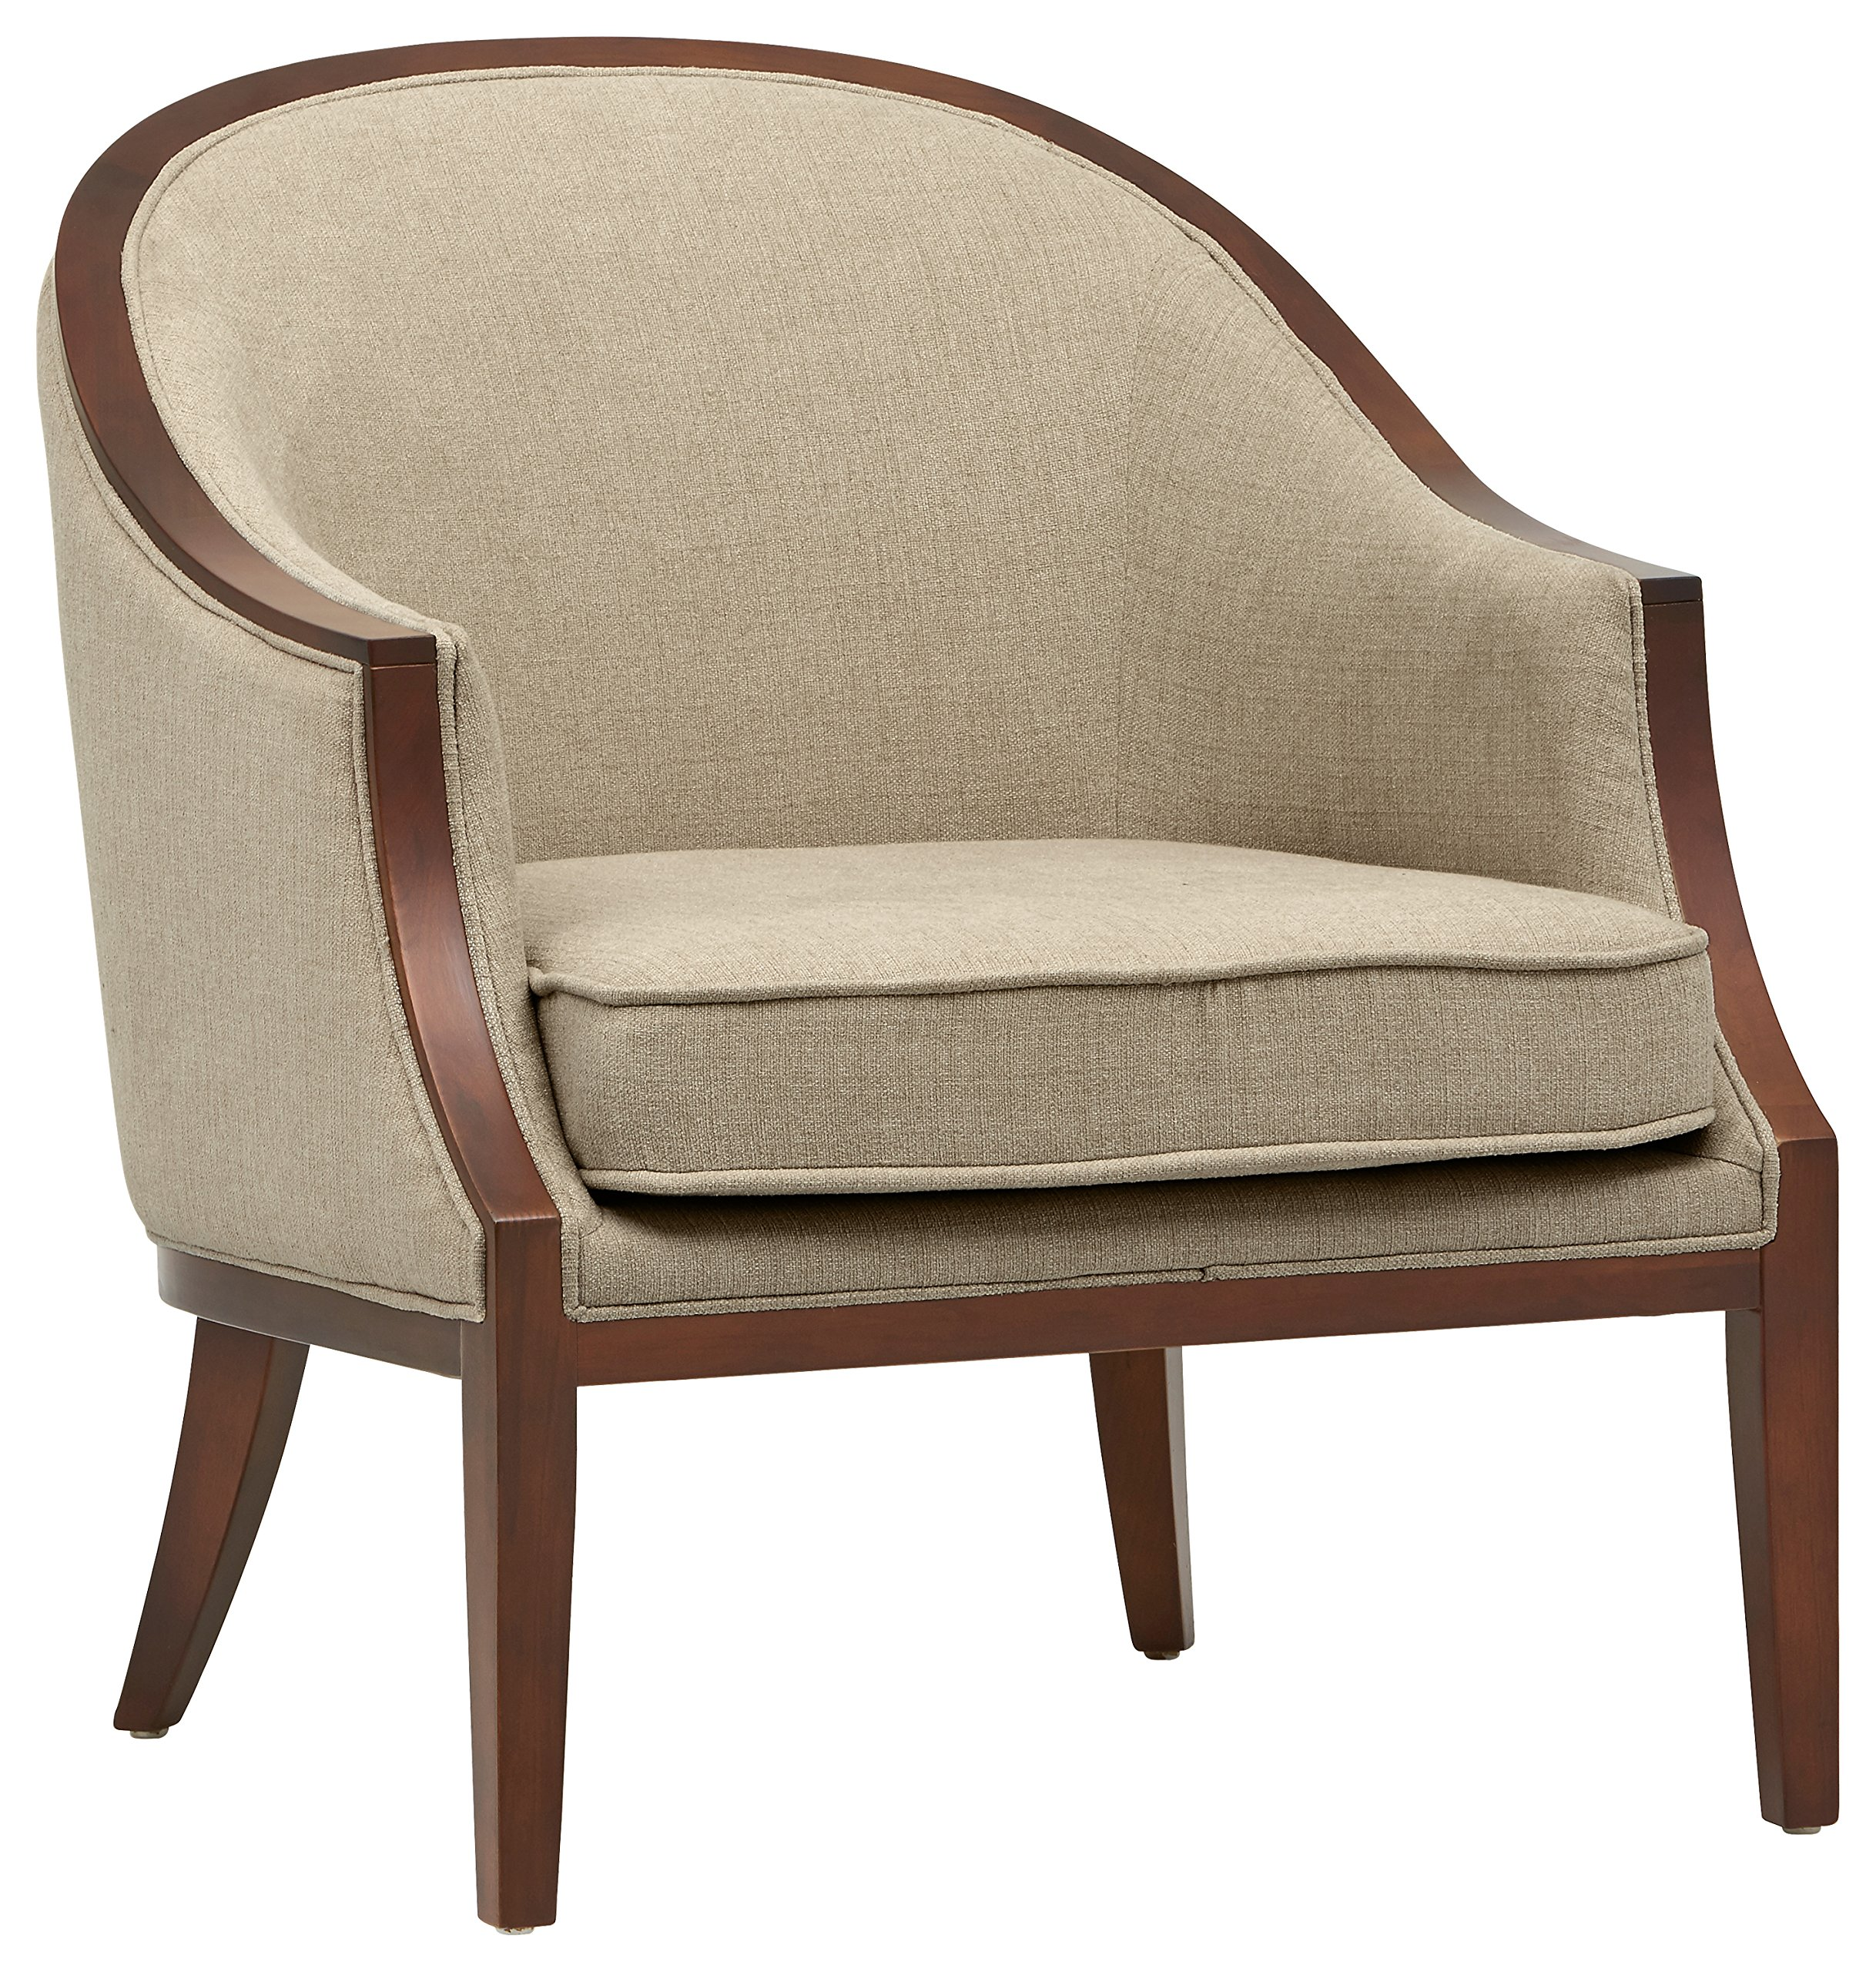 "Stone & Beam Ashbury Modern Exposed Wood Accent Chair, 29""W, Hemp - Graceful curves and a plush back and cushion invite you to take a seat in this accent chair. Its modern combination of sleek exposed wood and attractive upholstery will blend effortlessly with any living space. 31.9""D x 29""W x 33""H Solid wood and engineered hardwood frame, durable fabric - living-room-furniture, living-room, accent-chairs - A1N6TO%2ByqvL -"